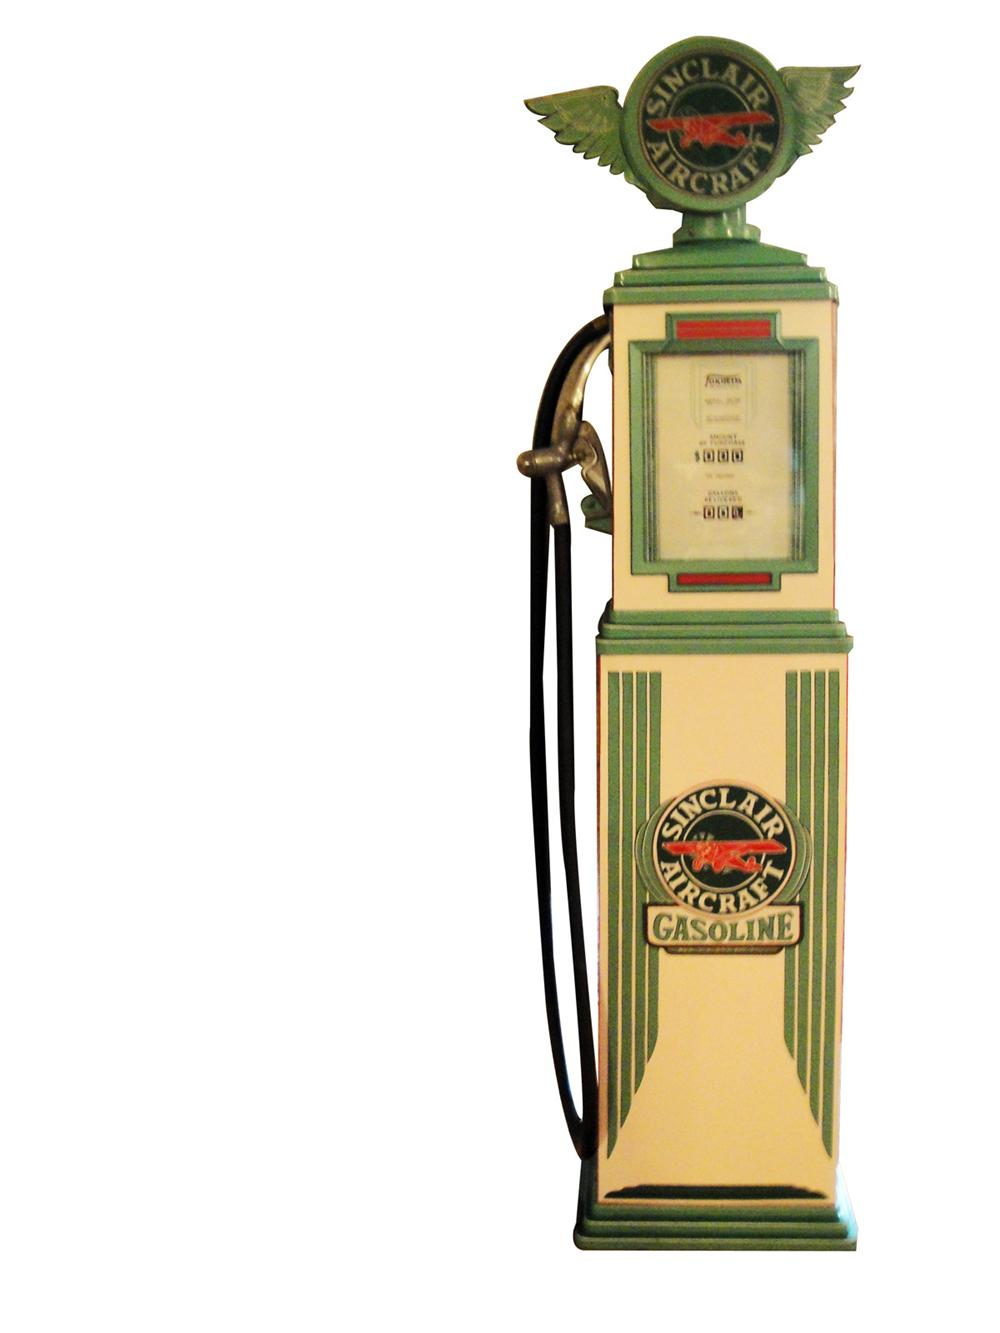 Extraordinary 1934 Sinclair Aviation Gasoline Tokheim model #34 restored gas pump. - Front 3/4 - 97774